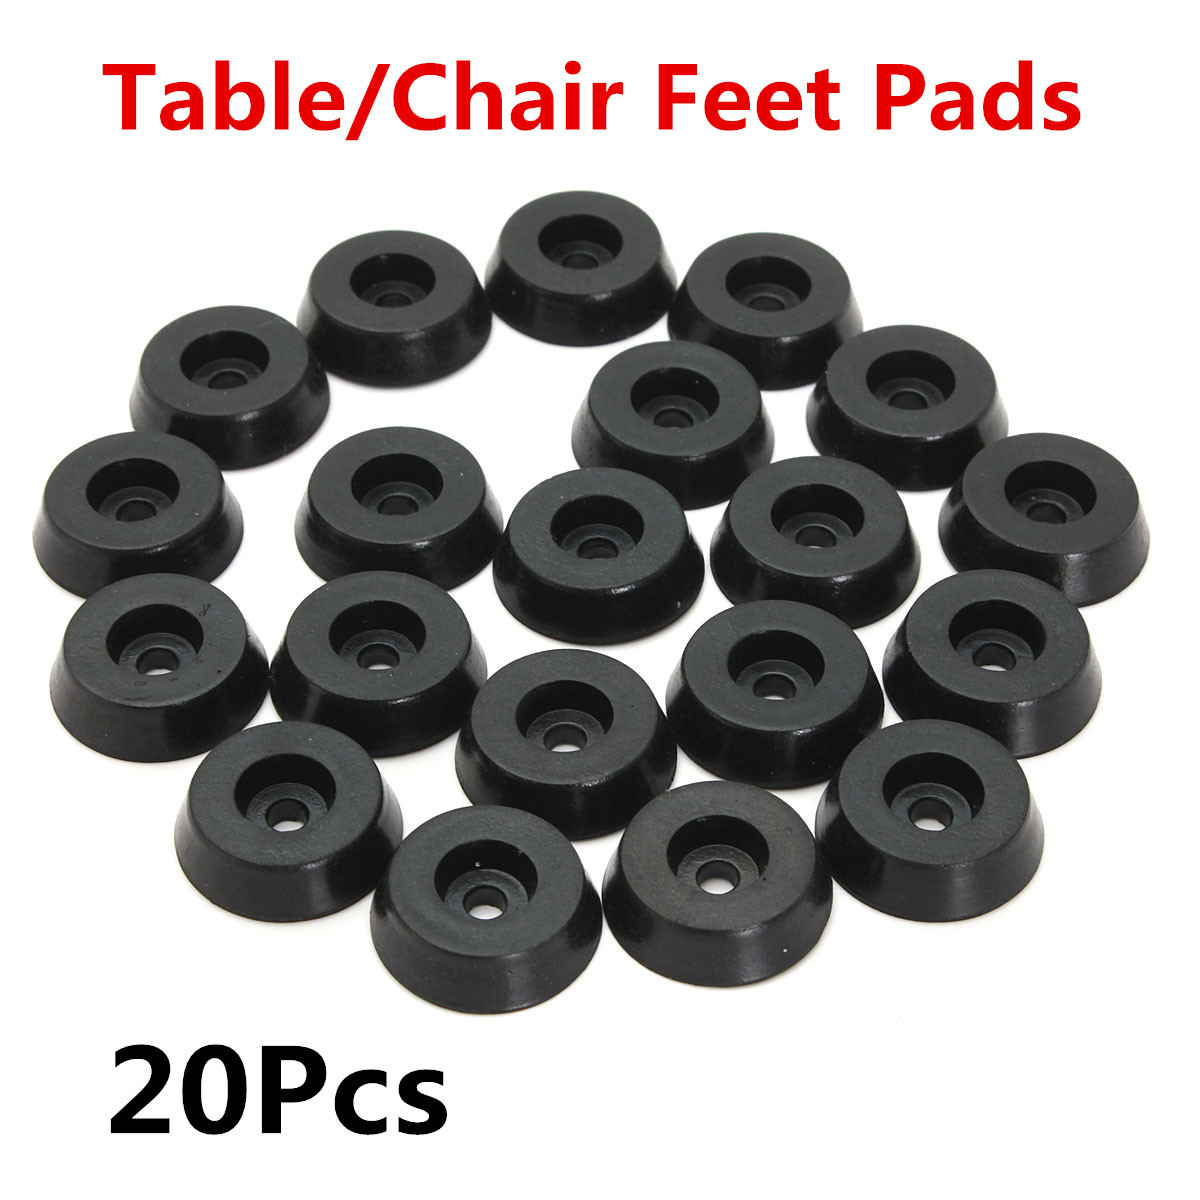 20pcs Rubber Table Furniture Chair Table Feet Leg Bottom Tips Pad Tile Floor Protectors Black 18x15x5mm 20pcs rubber table chair furniture feet leg pads tile floor protectors 18x15x5mm